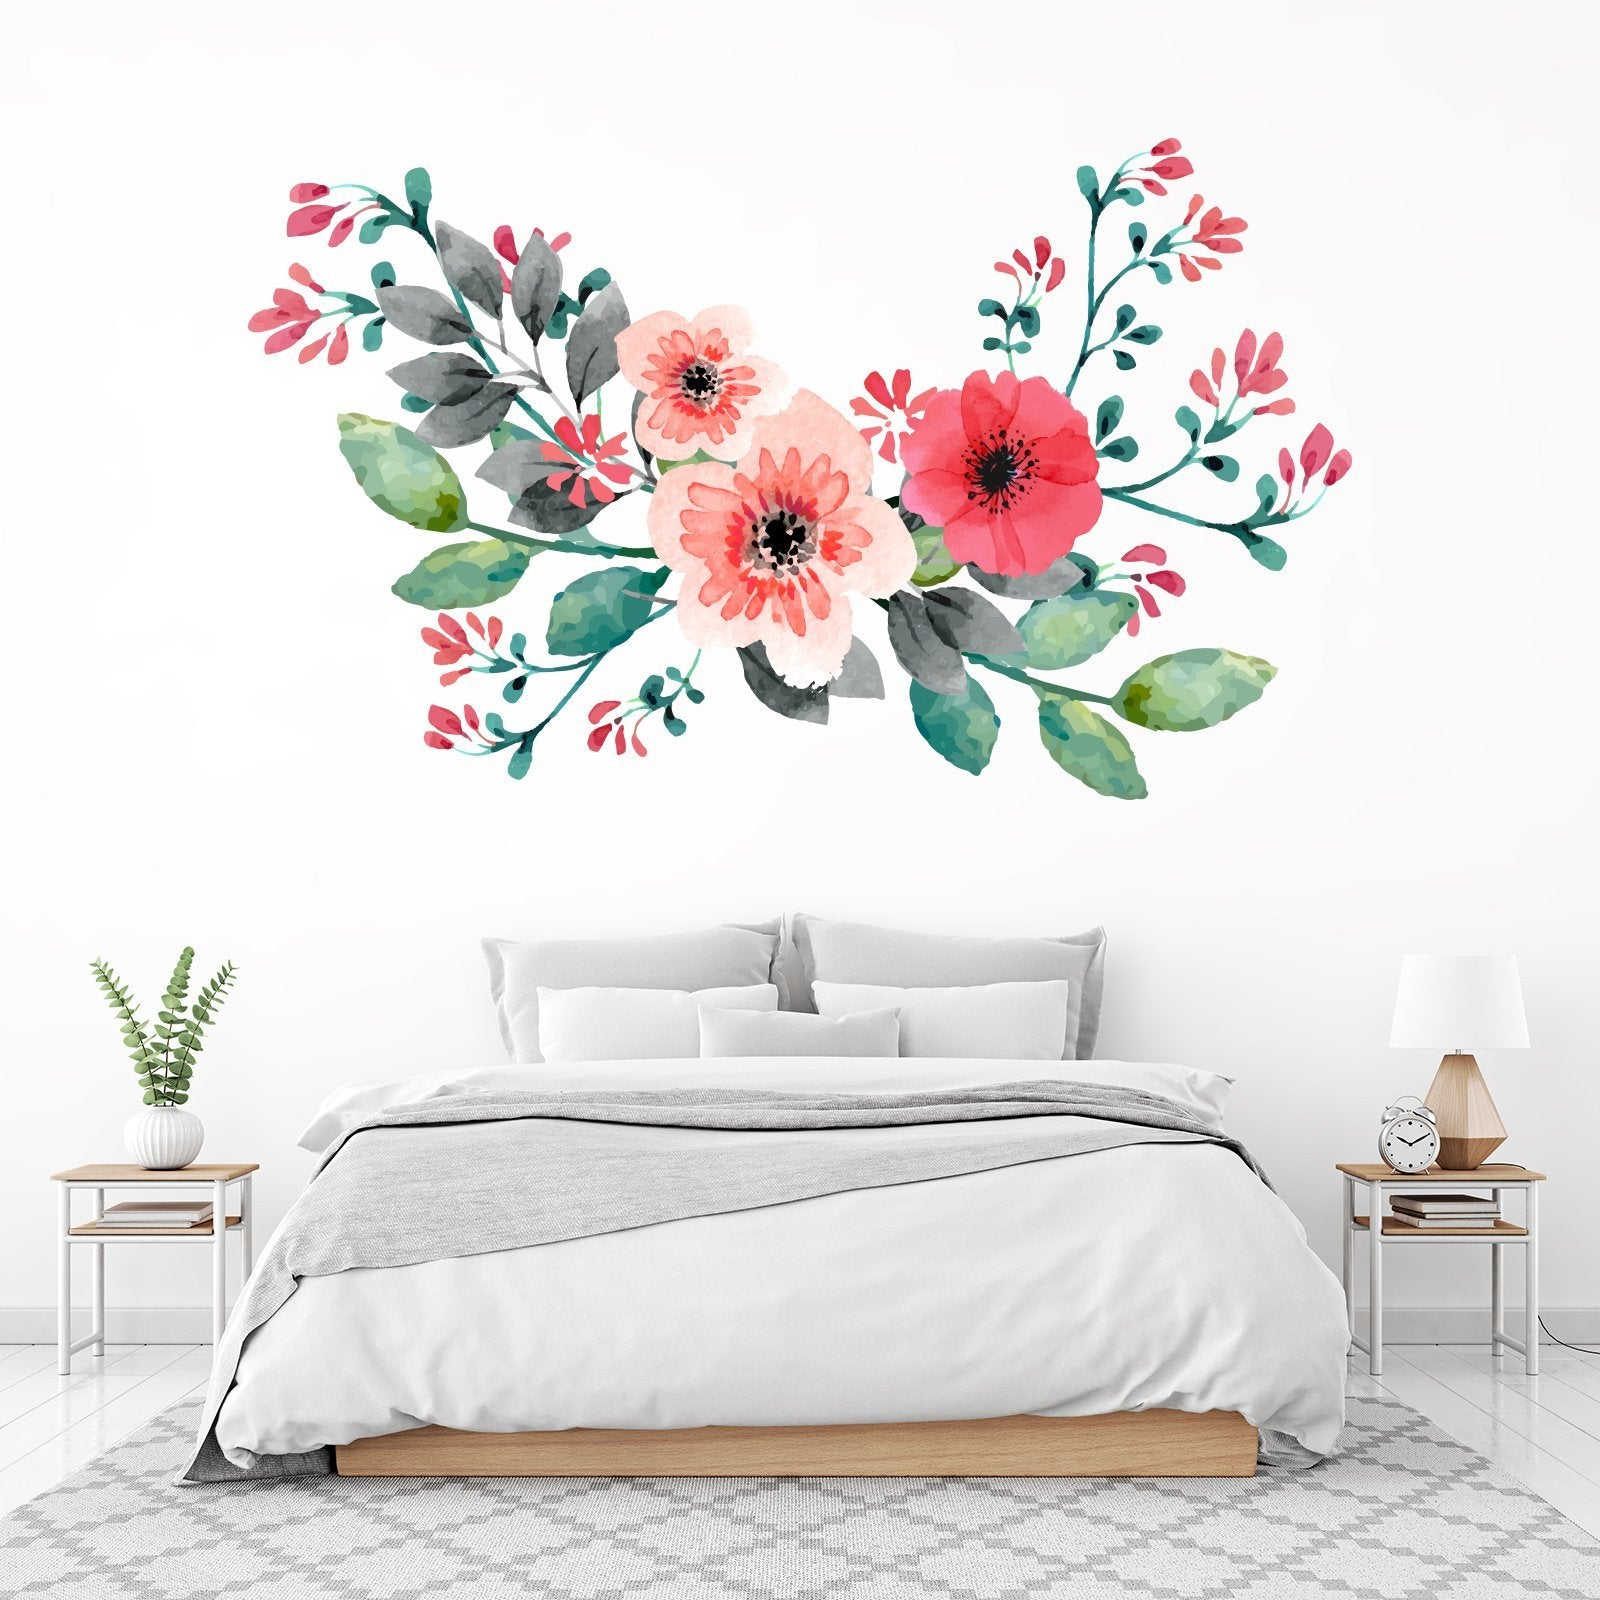 3D Safflower Leaf 084 Wall Stickers Wallpaper AJ Wallpaper